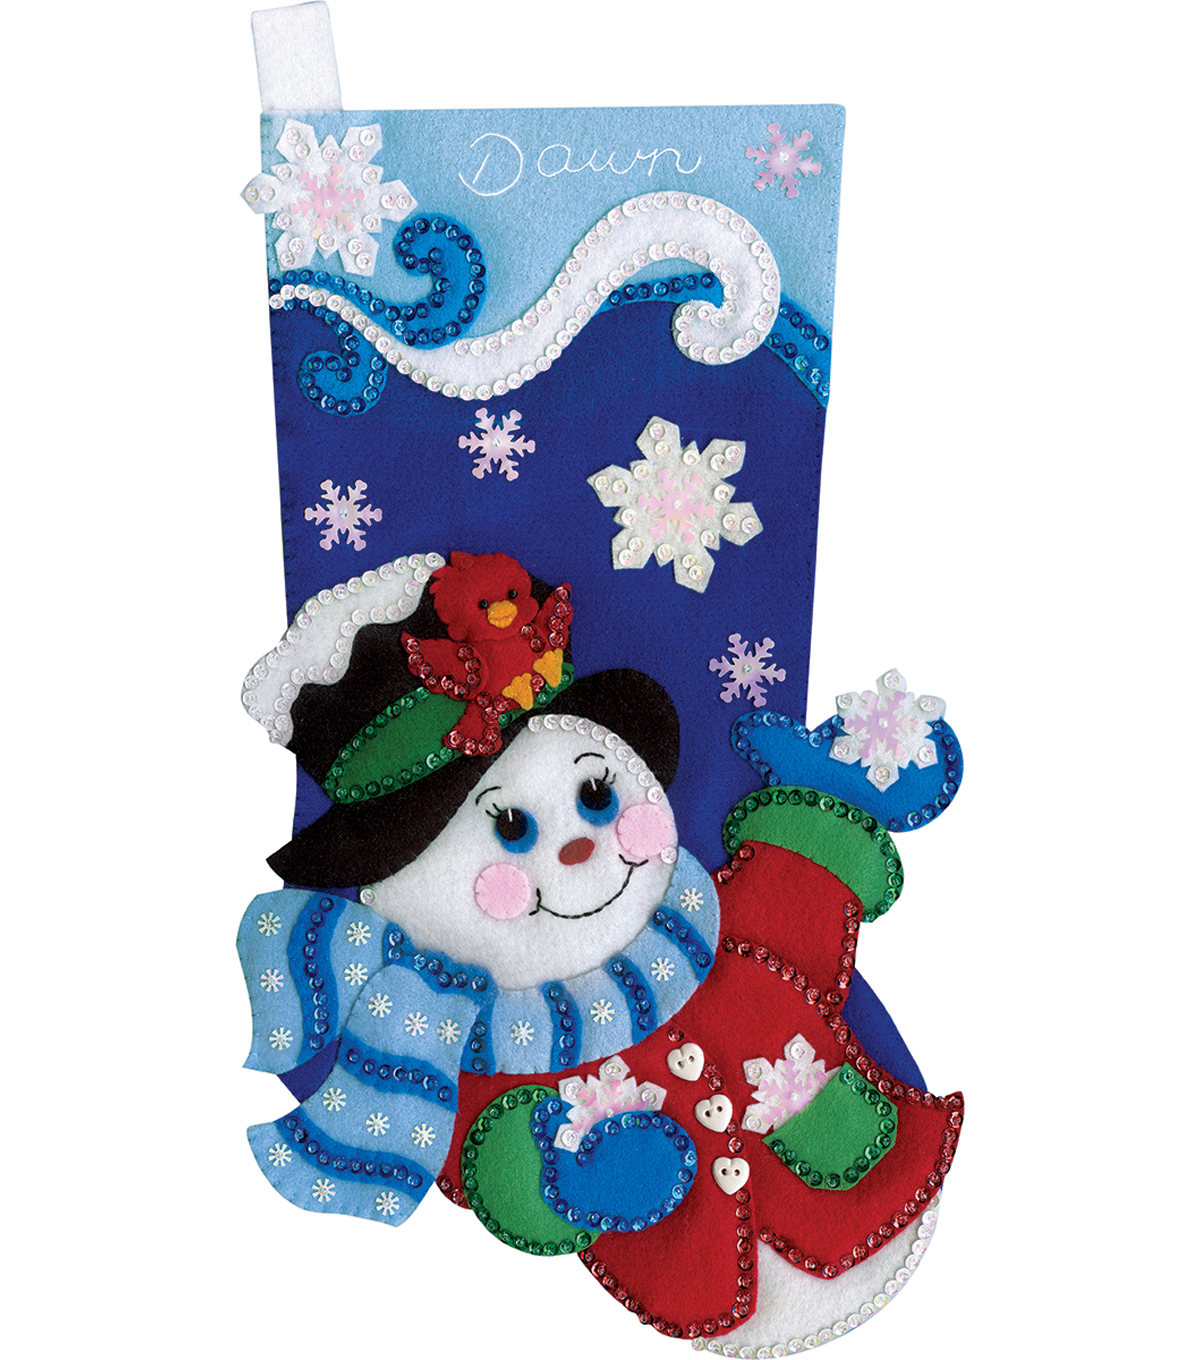 Design Works Crafts 18\u0027\u0027 Snowflake Snowman Stocking Felt Applique Kit